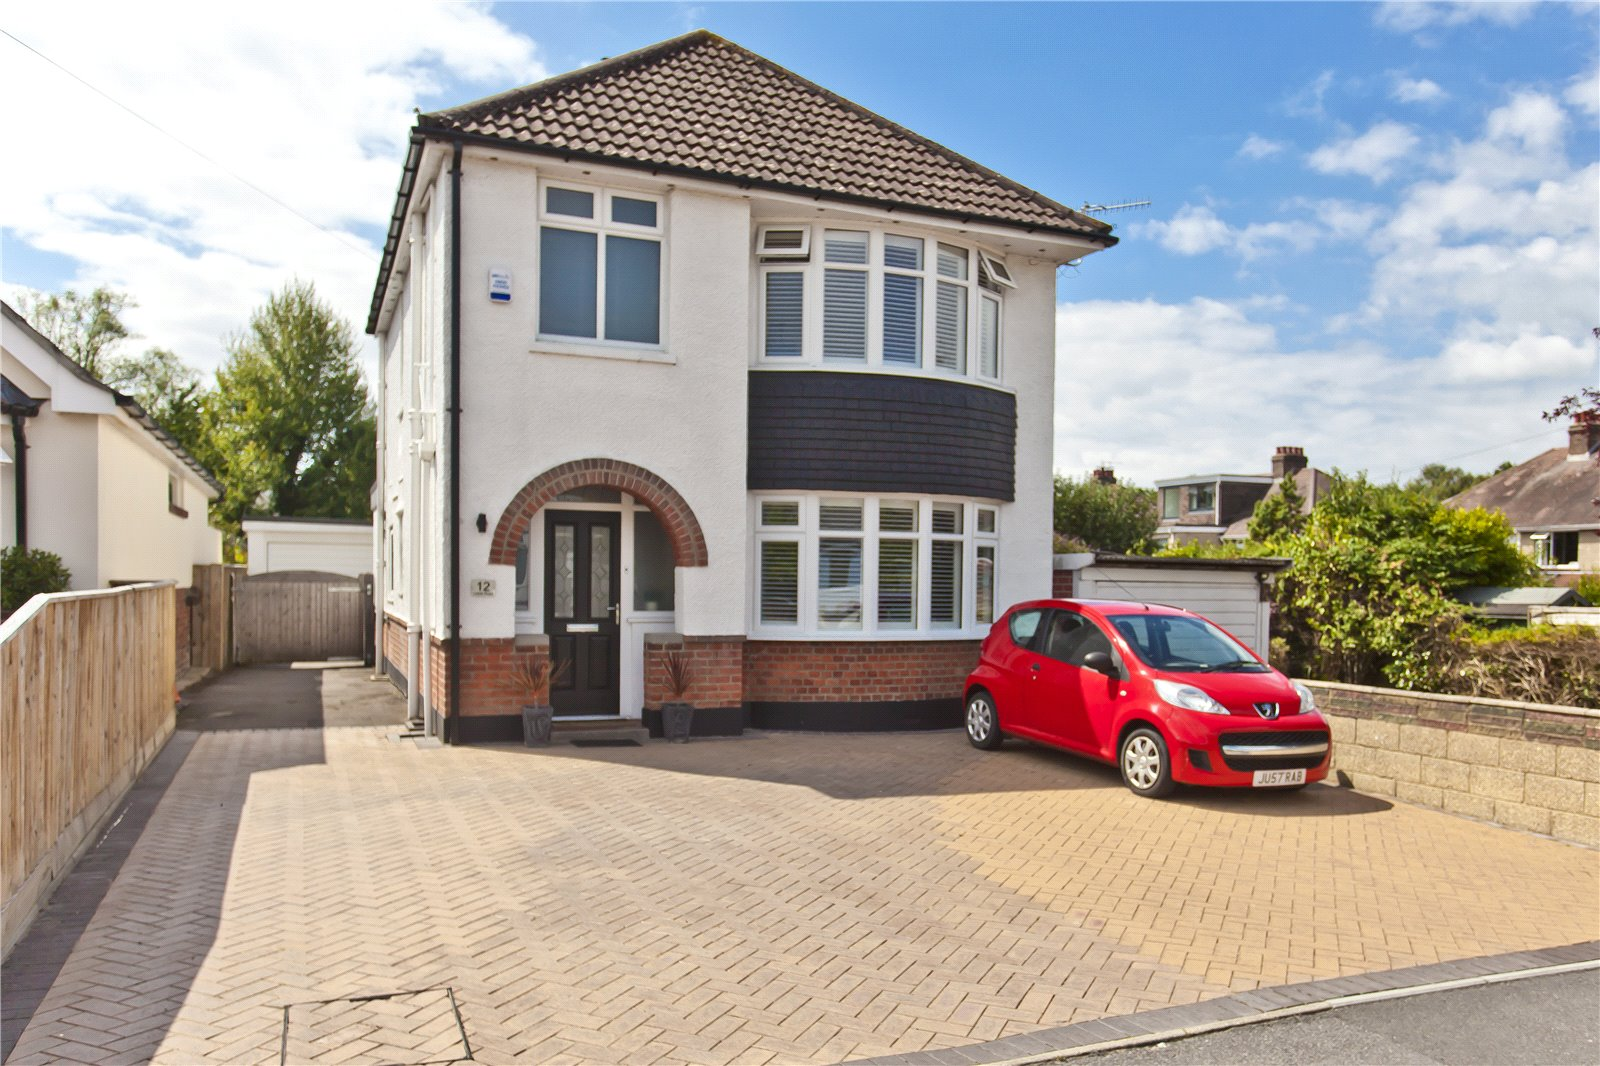 3 bed house for sale in Leslie Road, Whitecliff 0